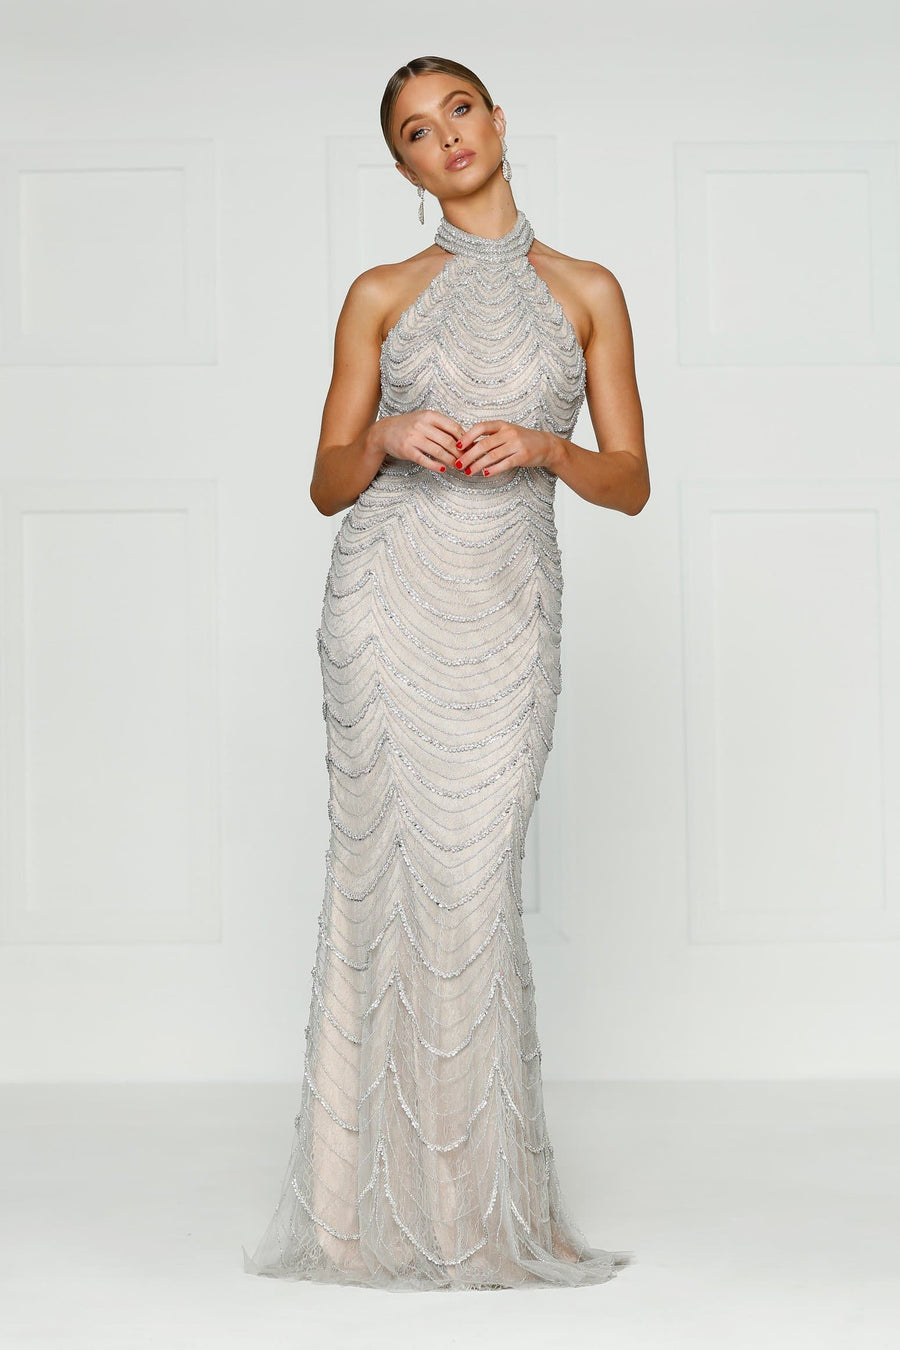 Silver/White Halter Neck Beaded Couture With Open Back - Mallory Beaded Gown